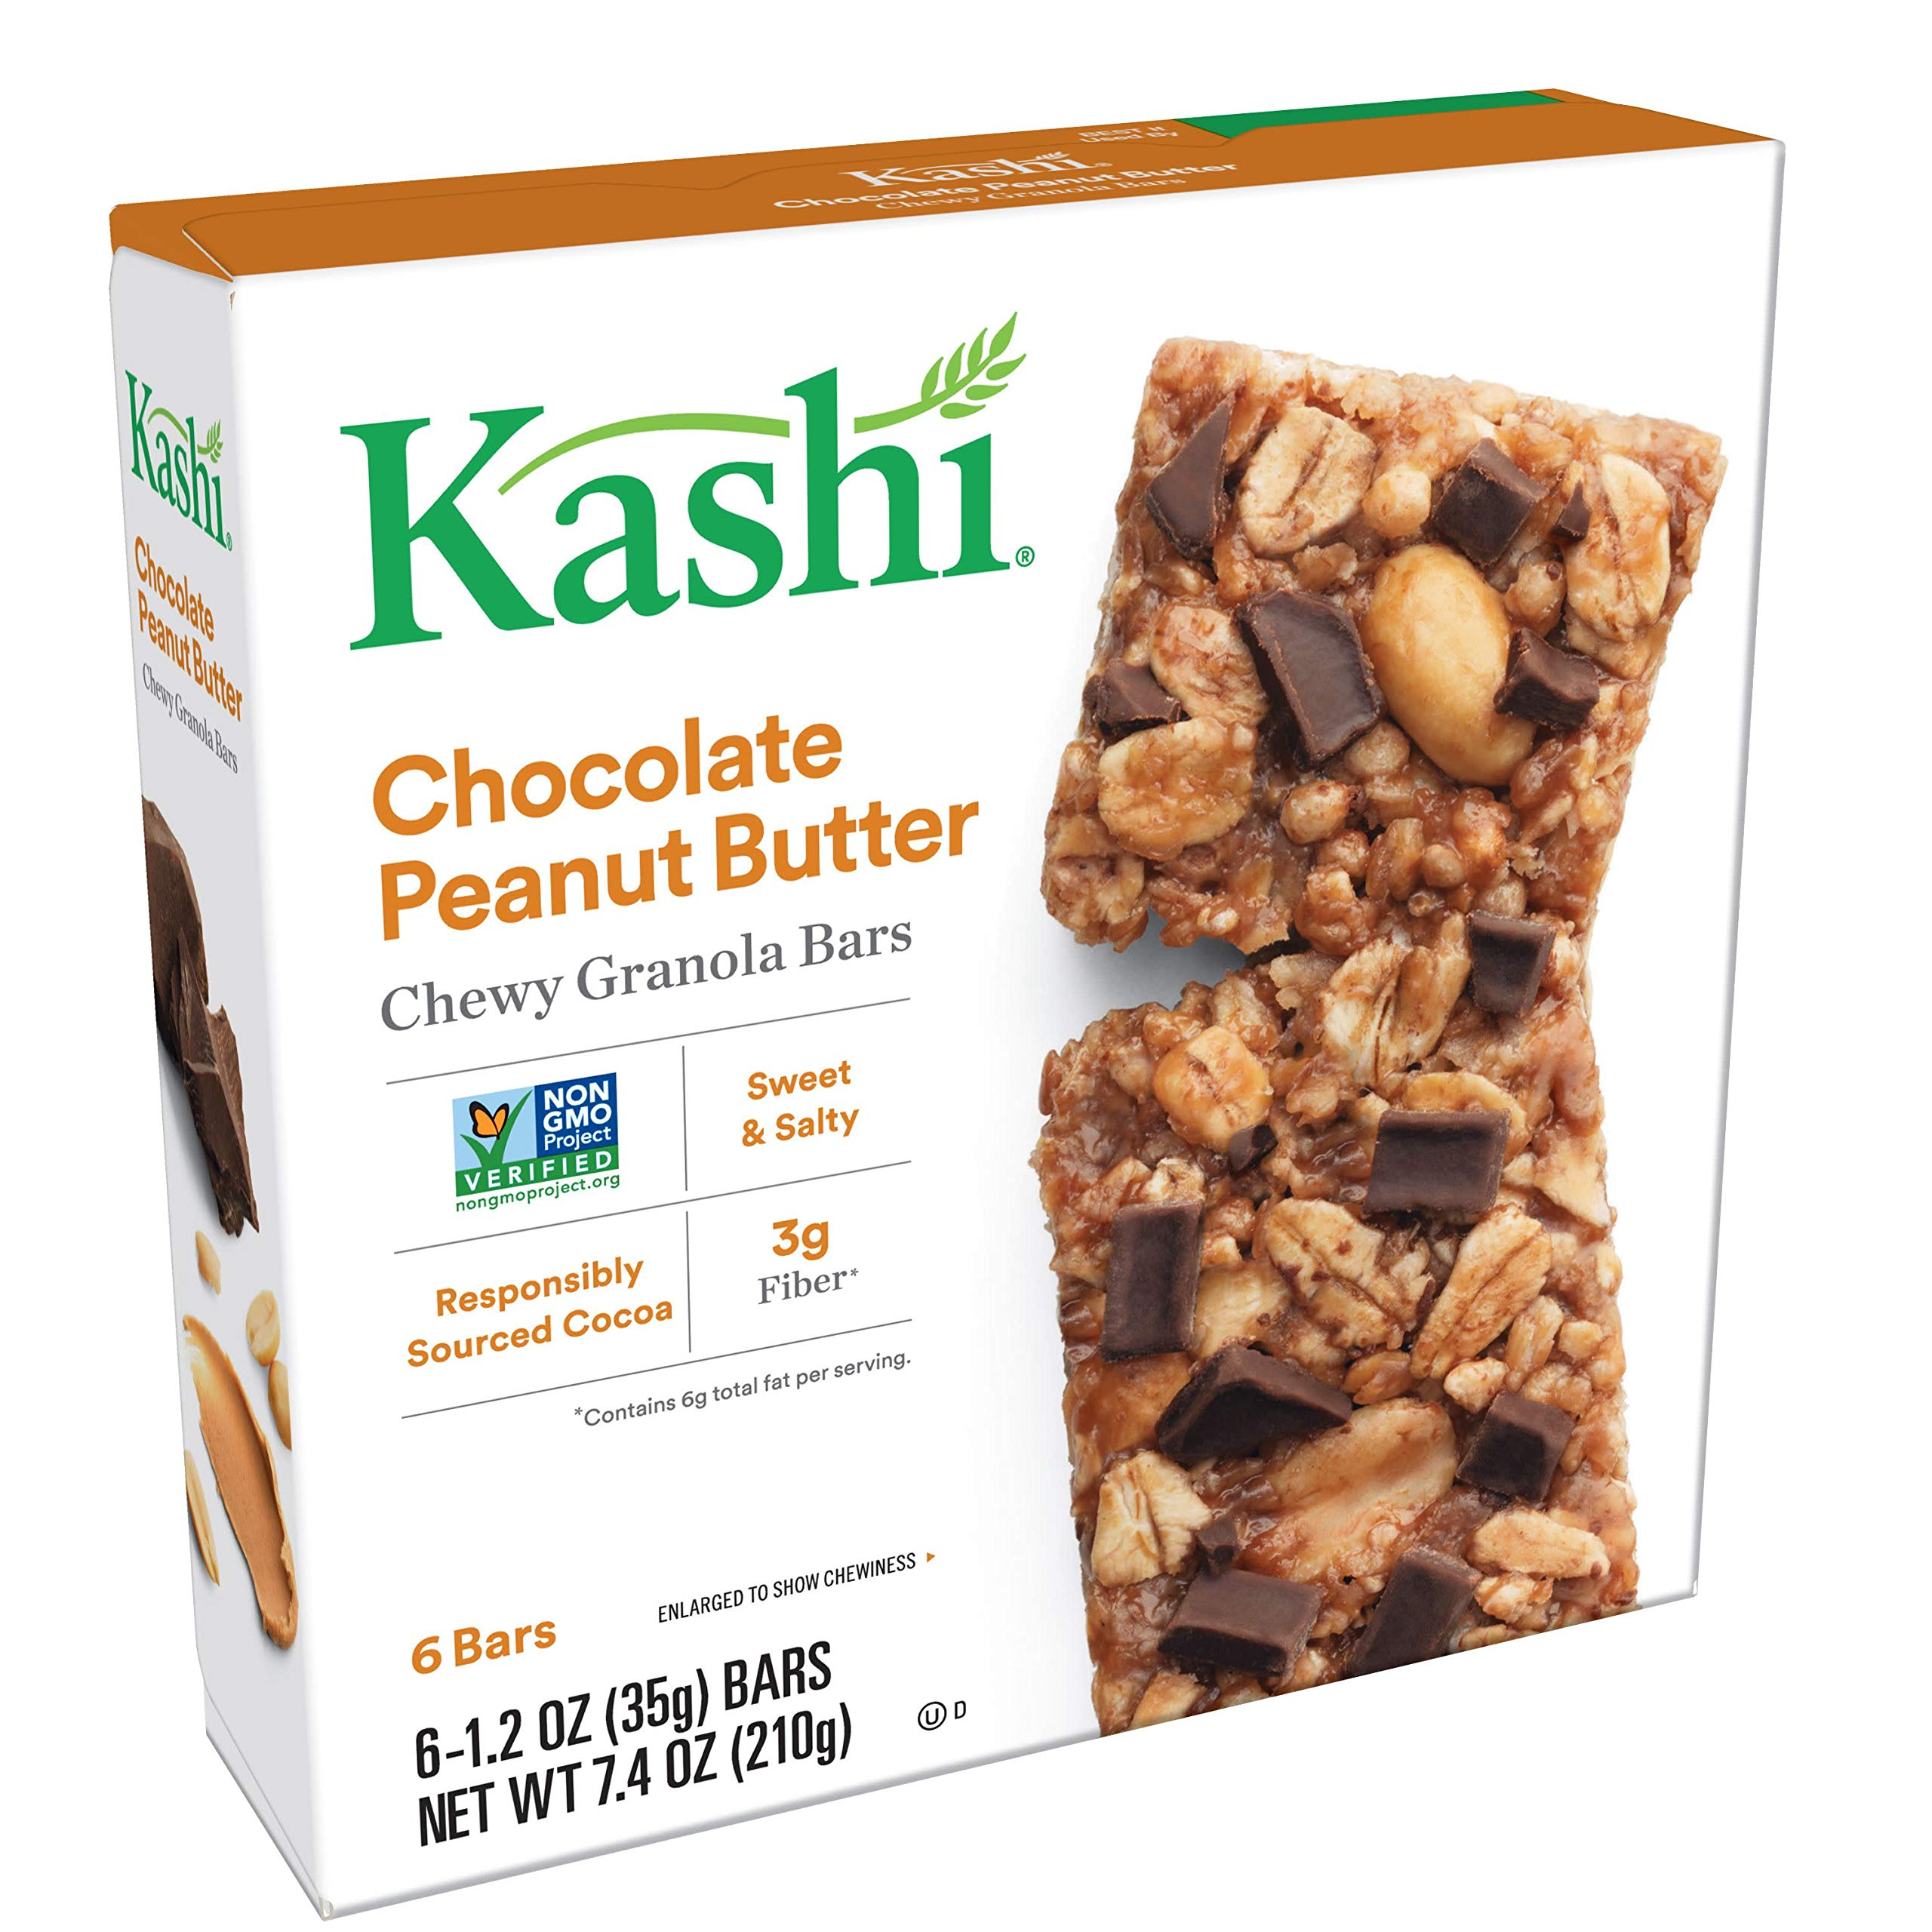 Kashi, Chewy Granola Bars, Chocolate Peanut Butter, Vegan, Non-GMO Project Verified, 7.4 oz (6 Count)(Pack of 8)